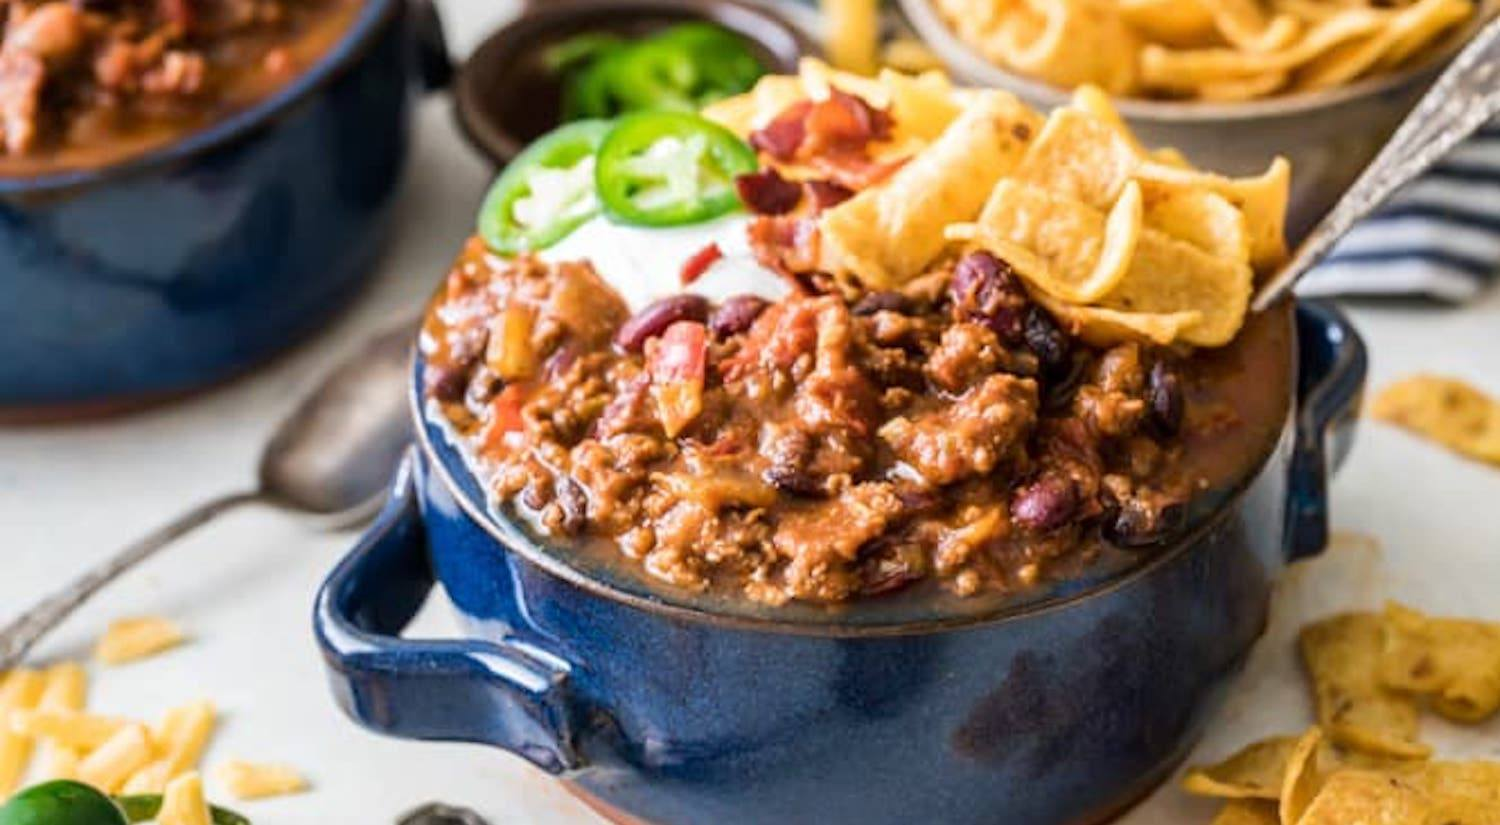 The-Best-Chili-Recipe-1-of-1-8